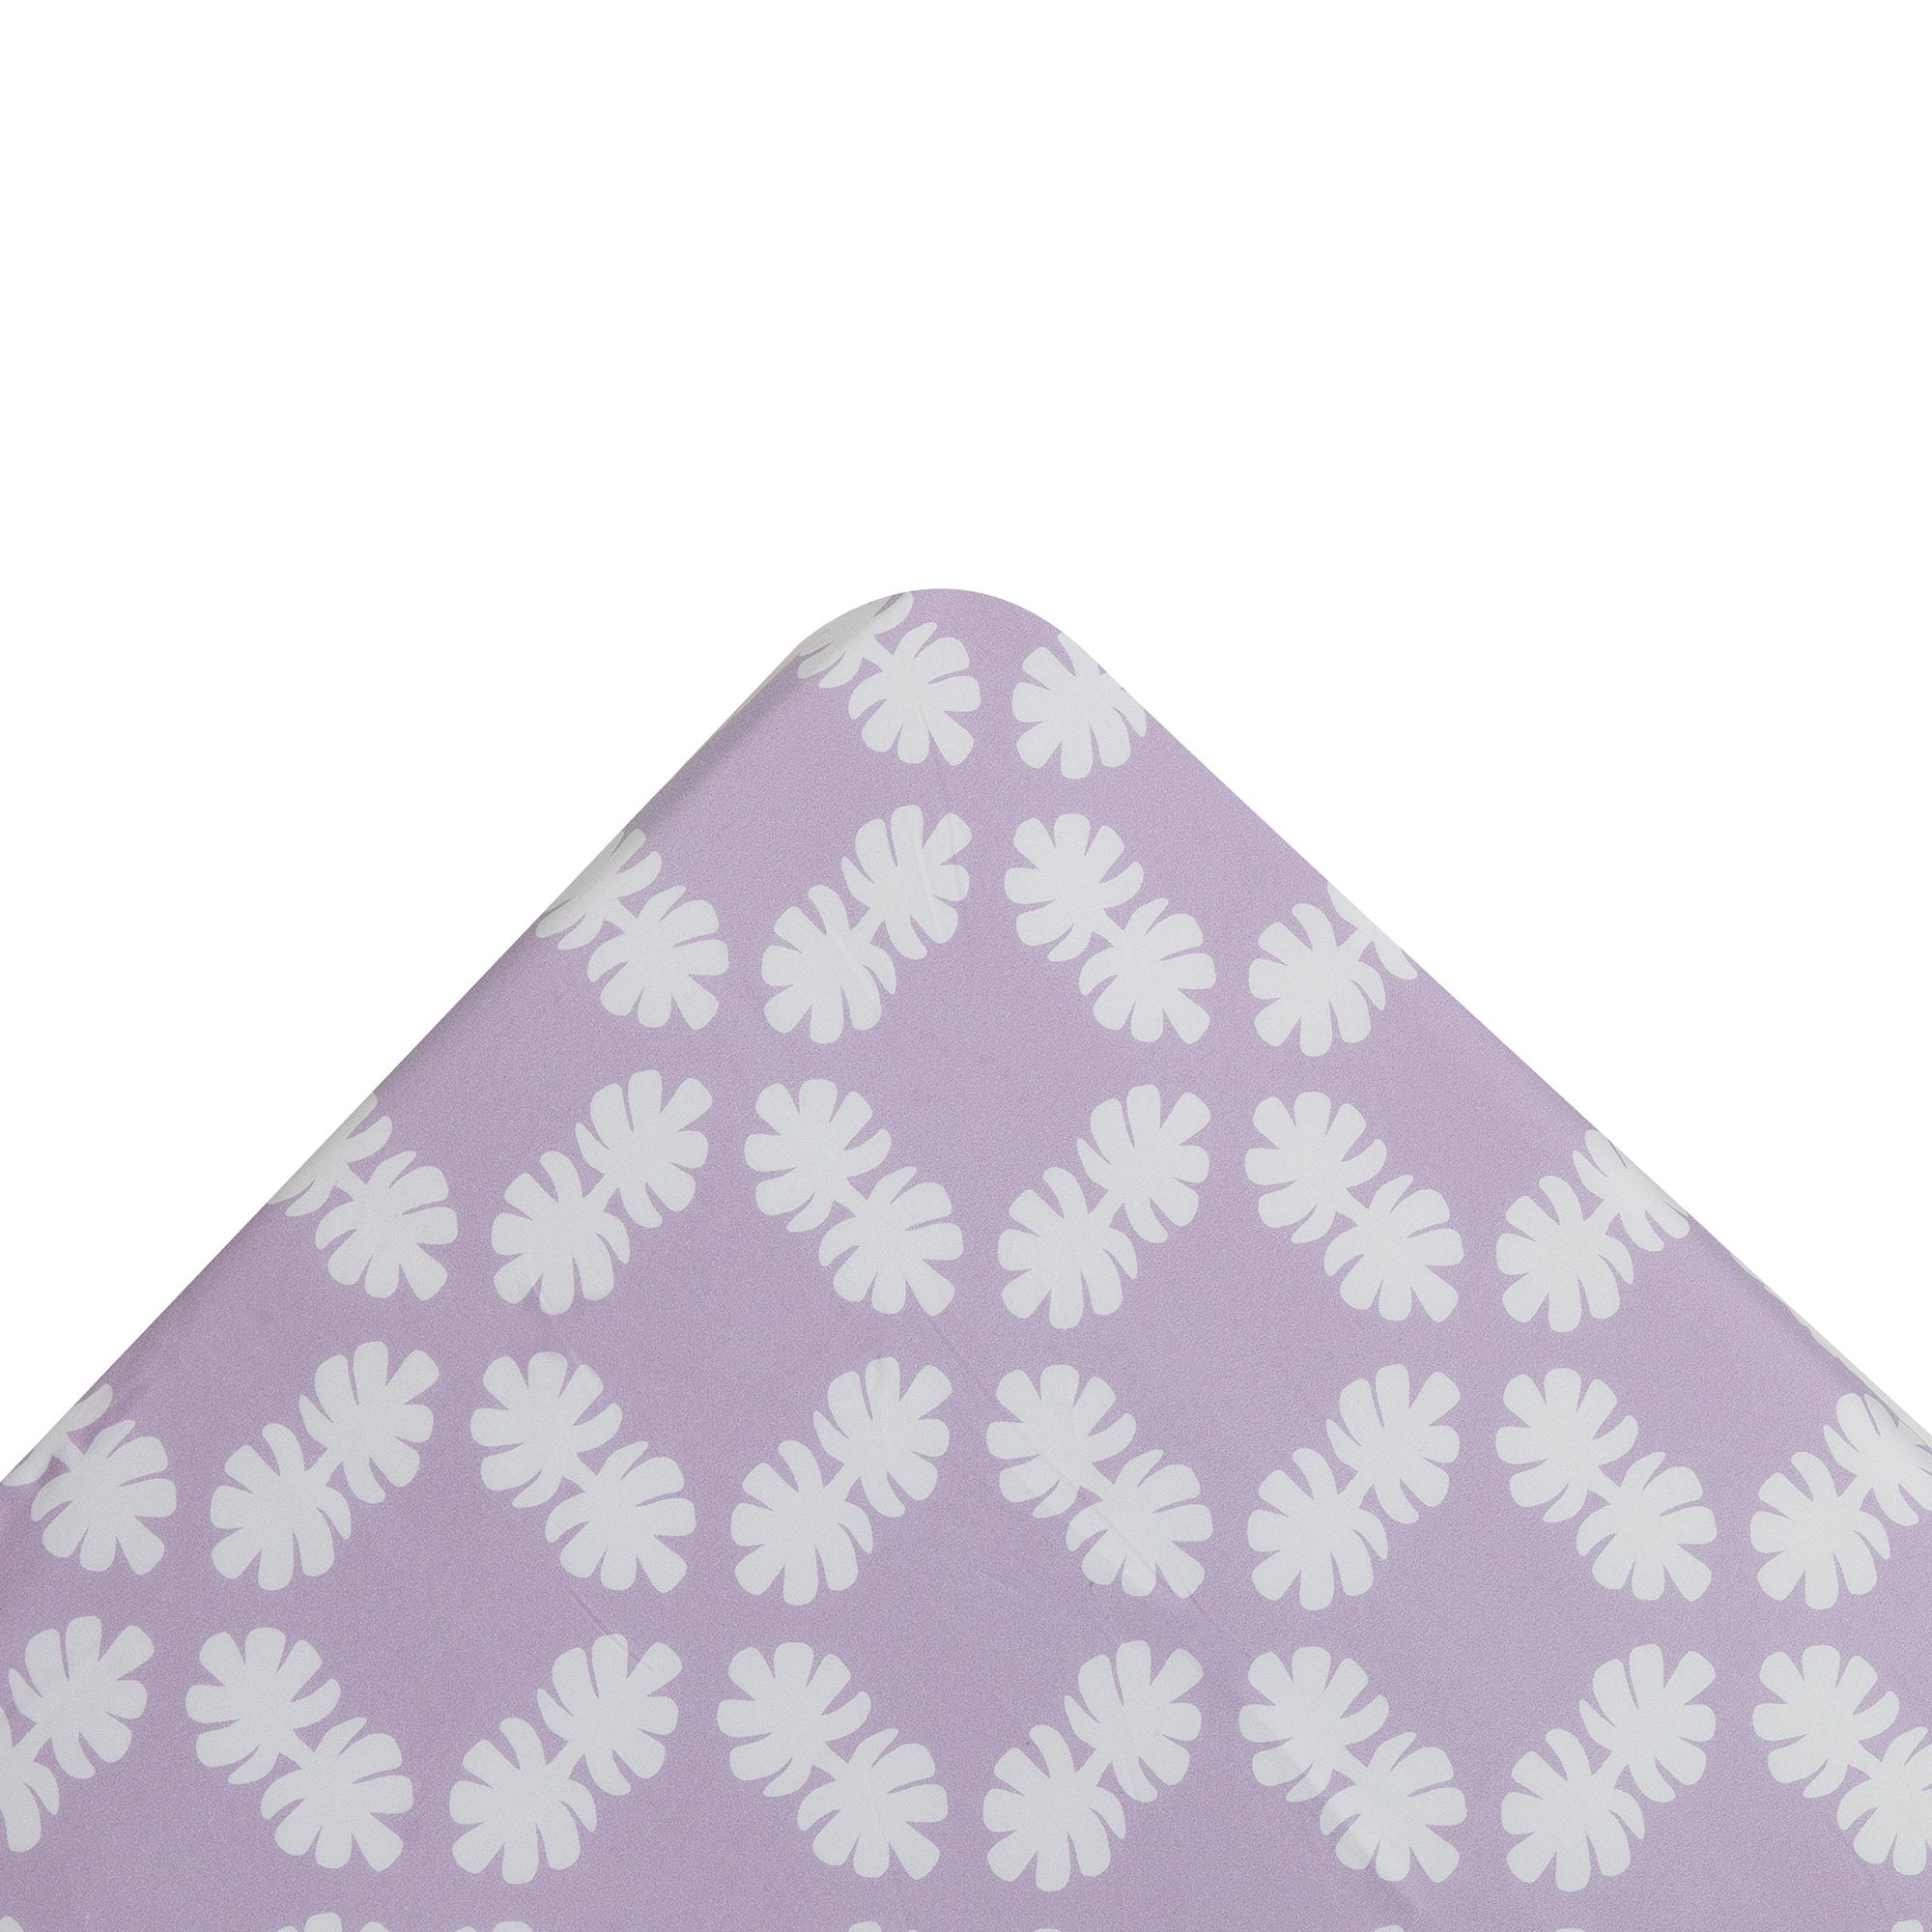 Kikau's Lots of Lilac Coco Palm kids fitted sheet on white background